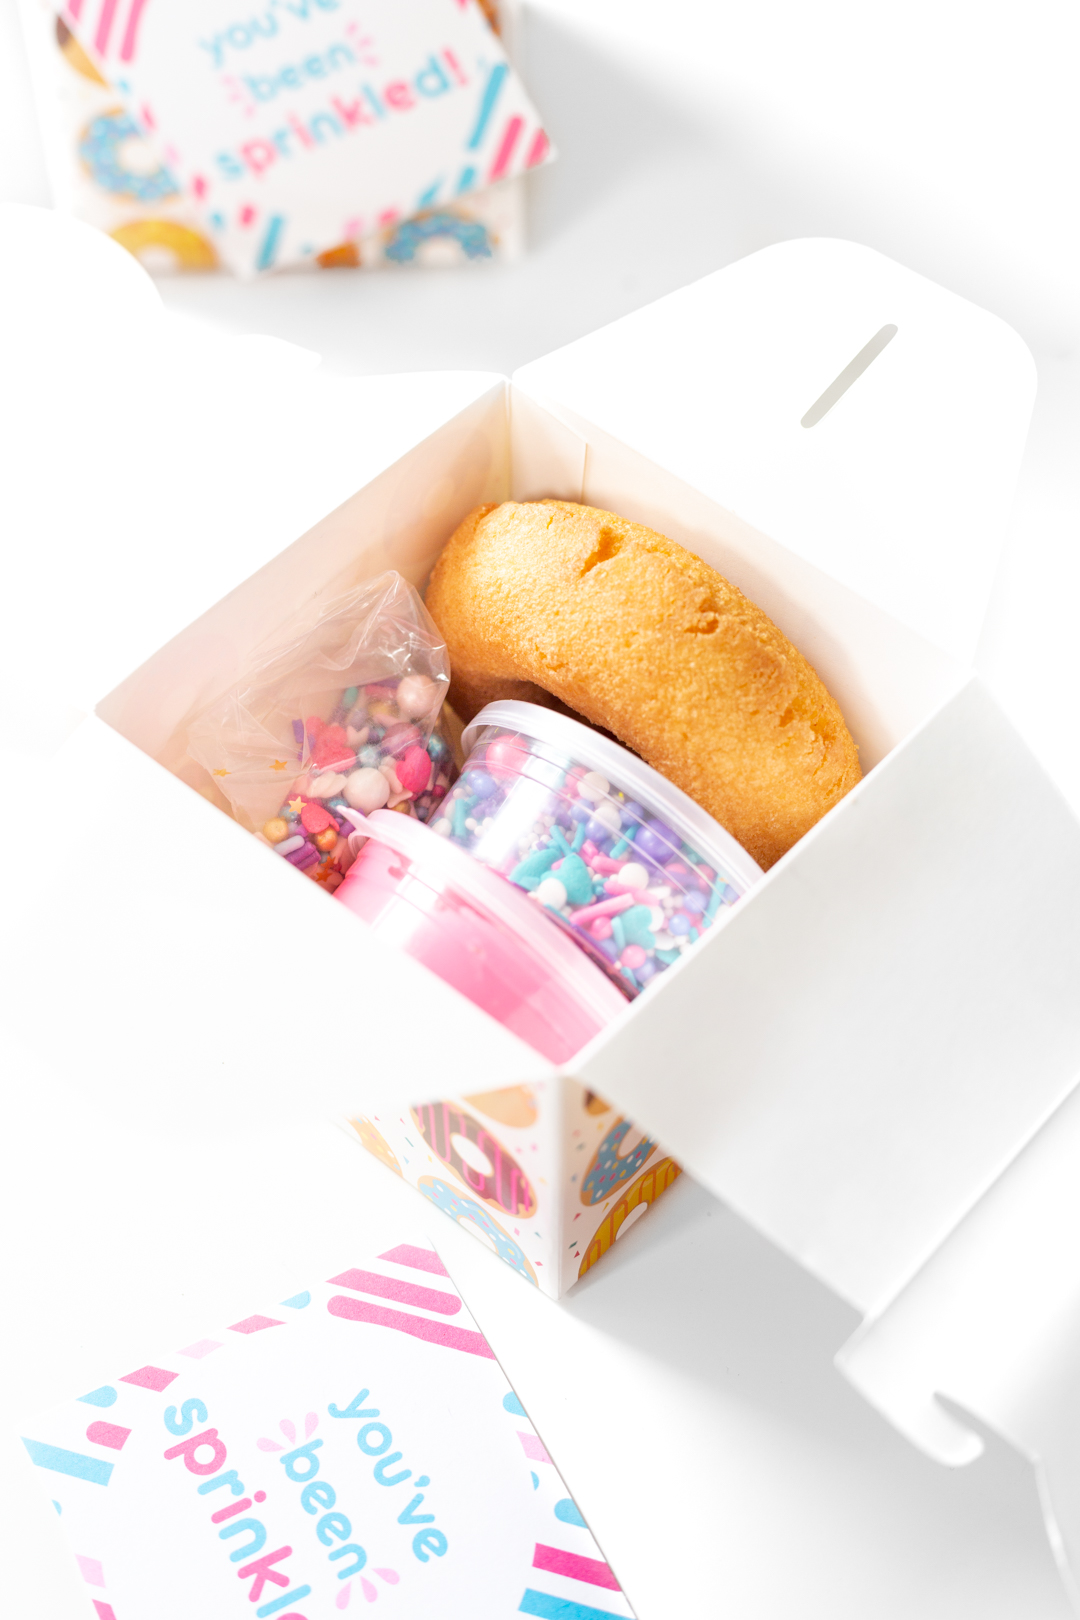 tiny donut decorating kit with containers of sprinkles and icing and a plain donut.